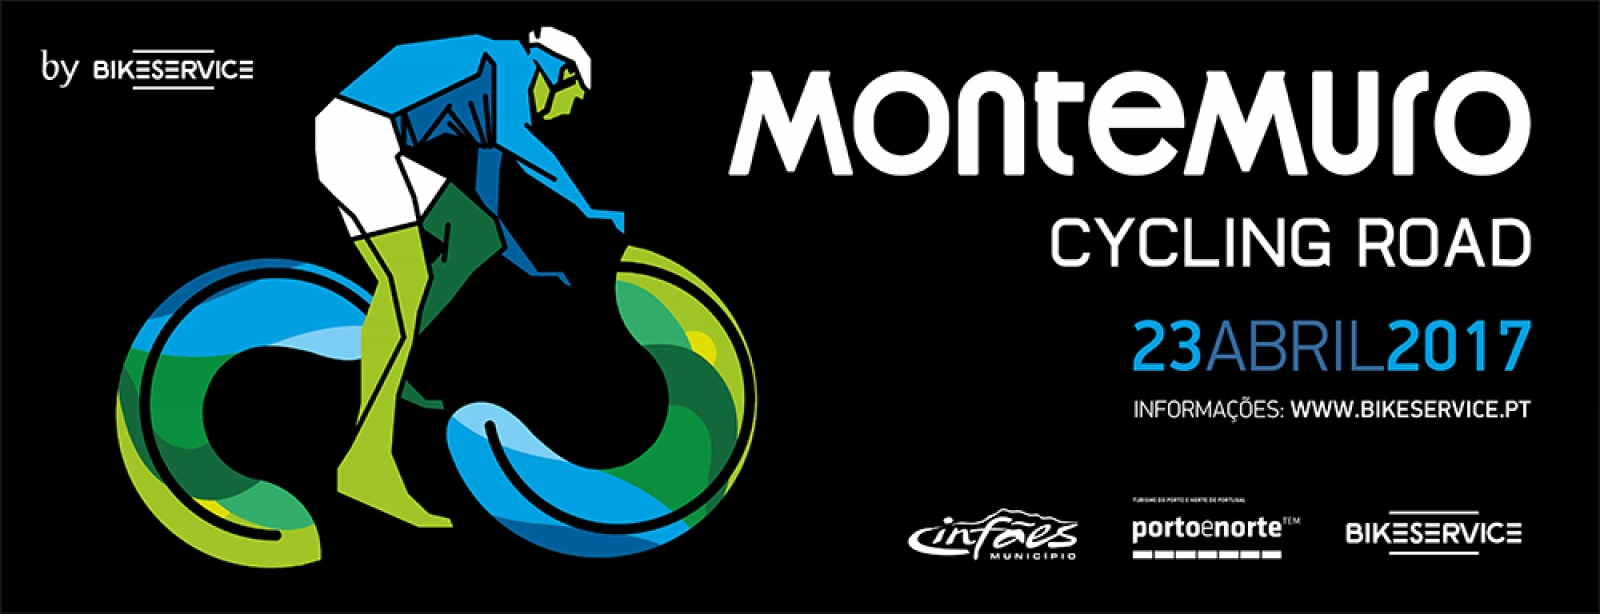 Cerca de 1000 ciclistas no Montemuro Cycling Road